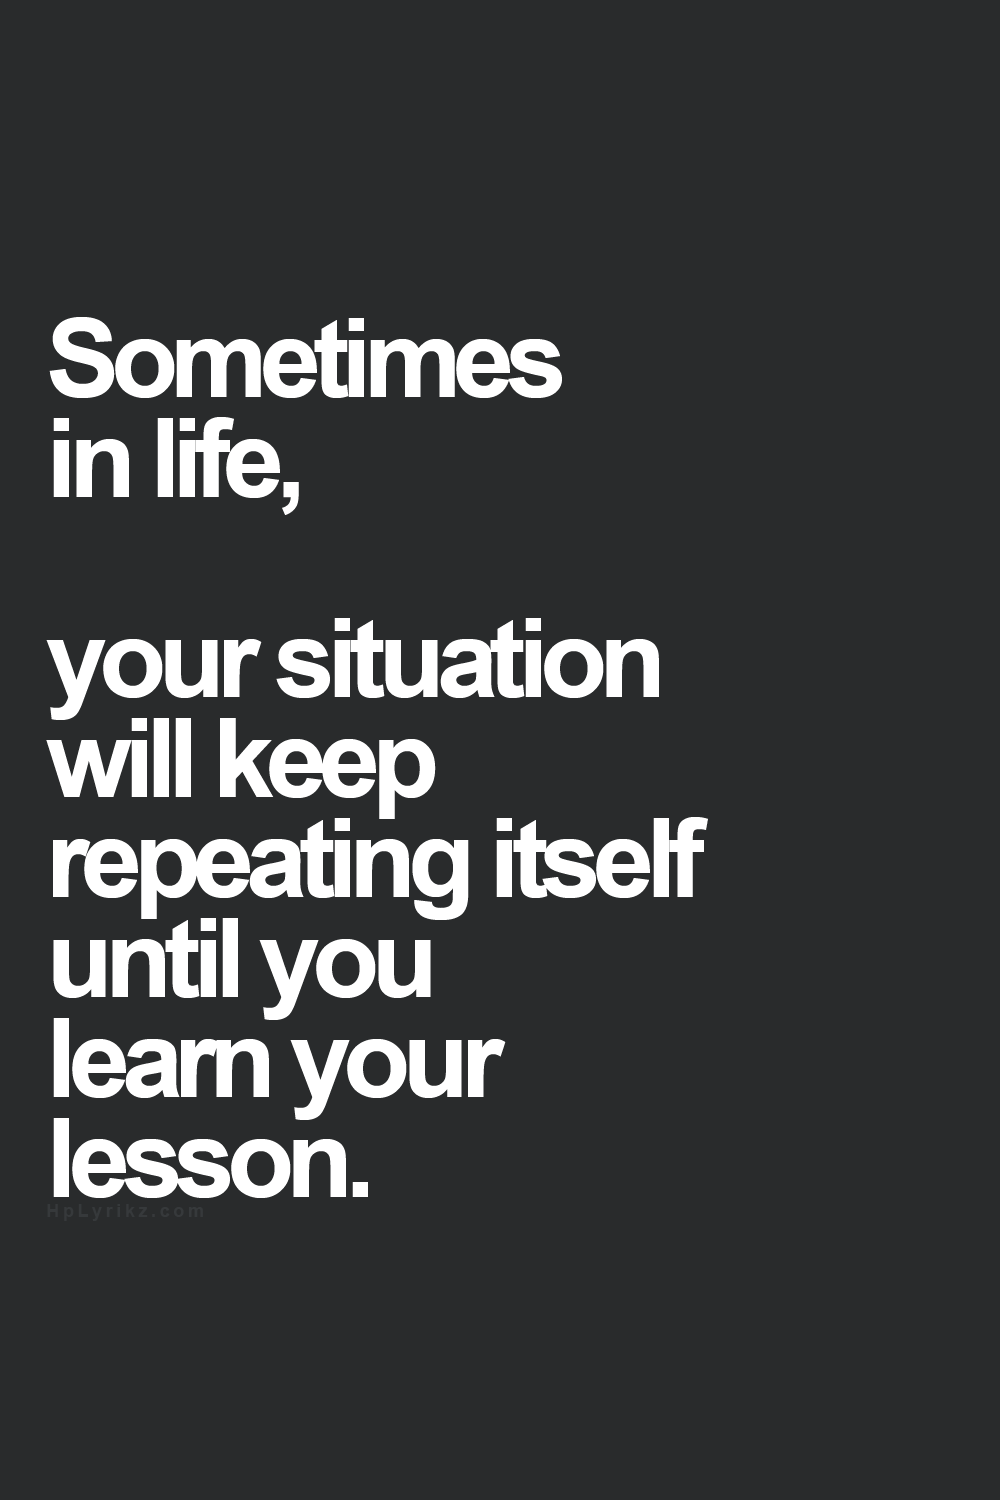 Quotes About Learning Lessons Learn From Your Past Every Bad Situation Has An Opportunity For